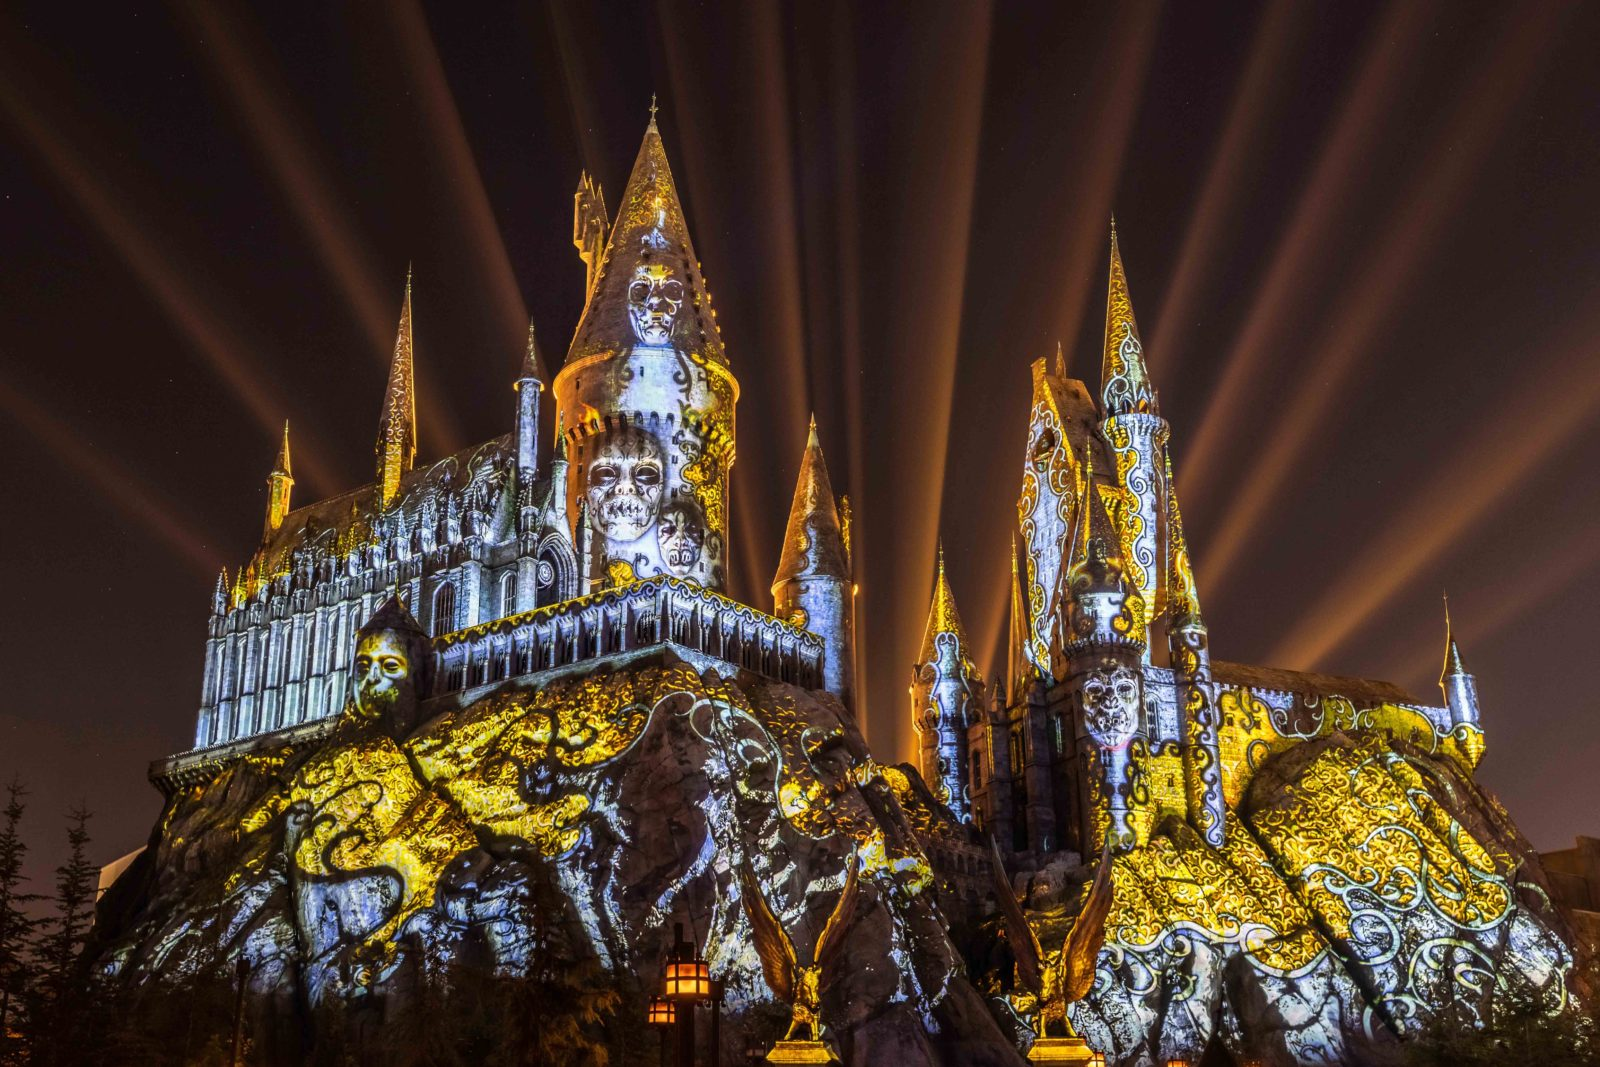 Dark Arts at Hogwarts Castle is Coming to Universal Orlando Resort this September